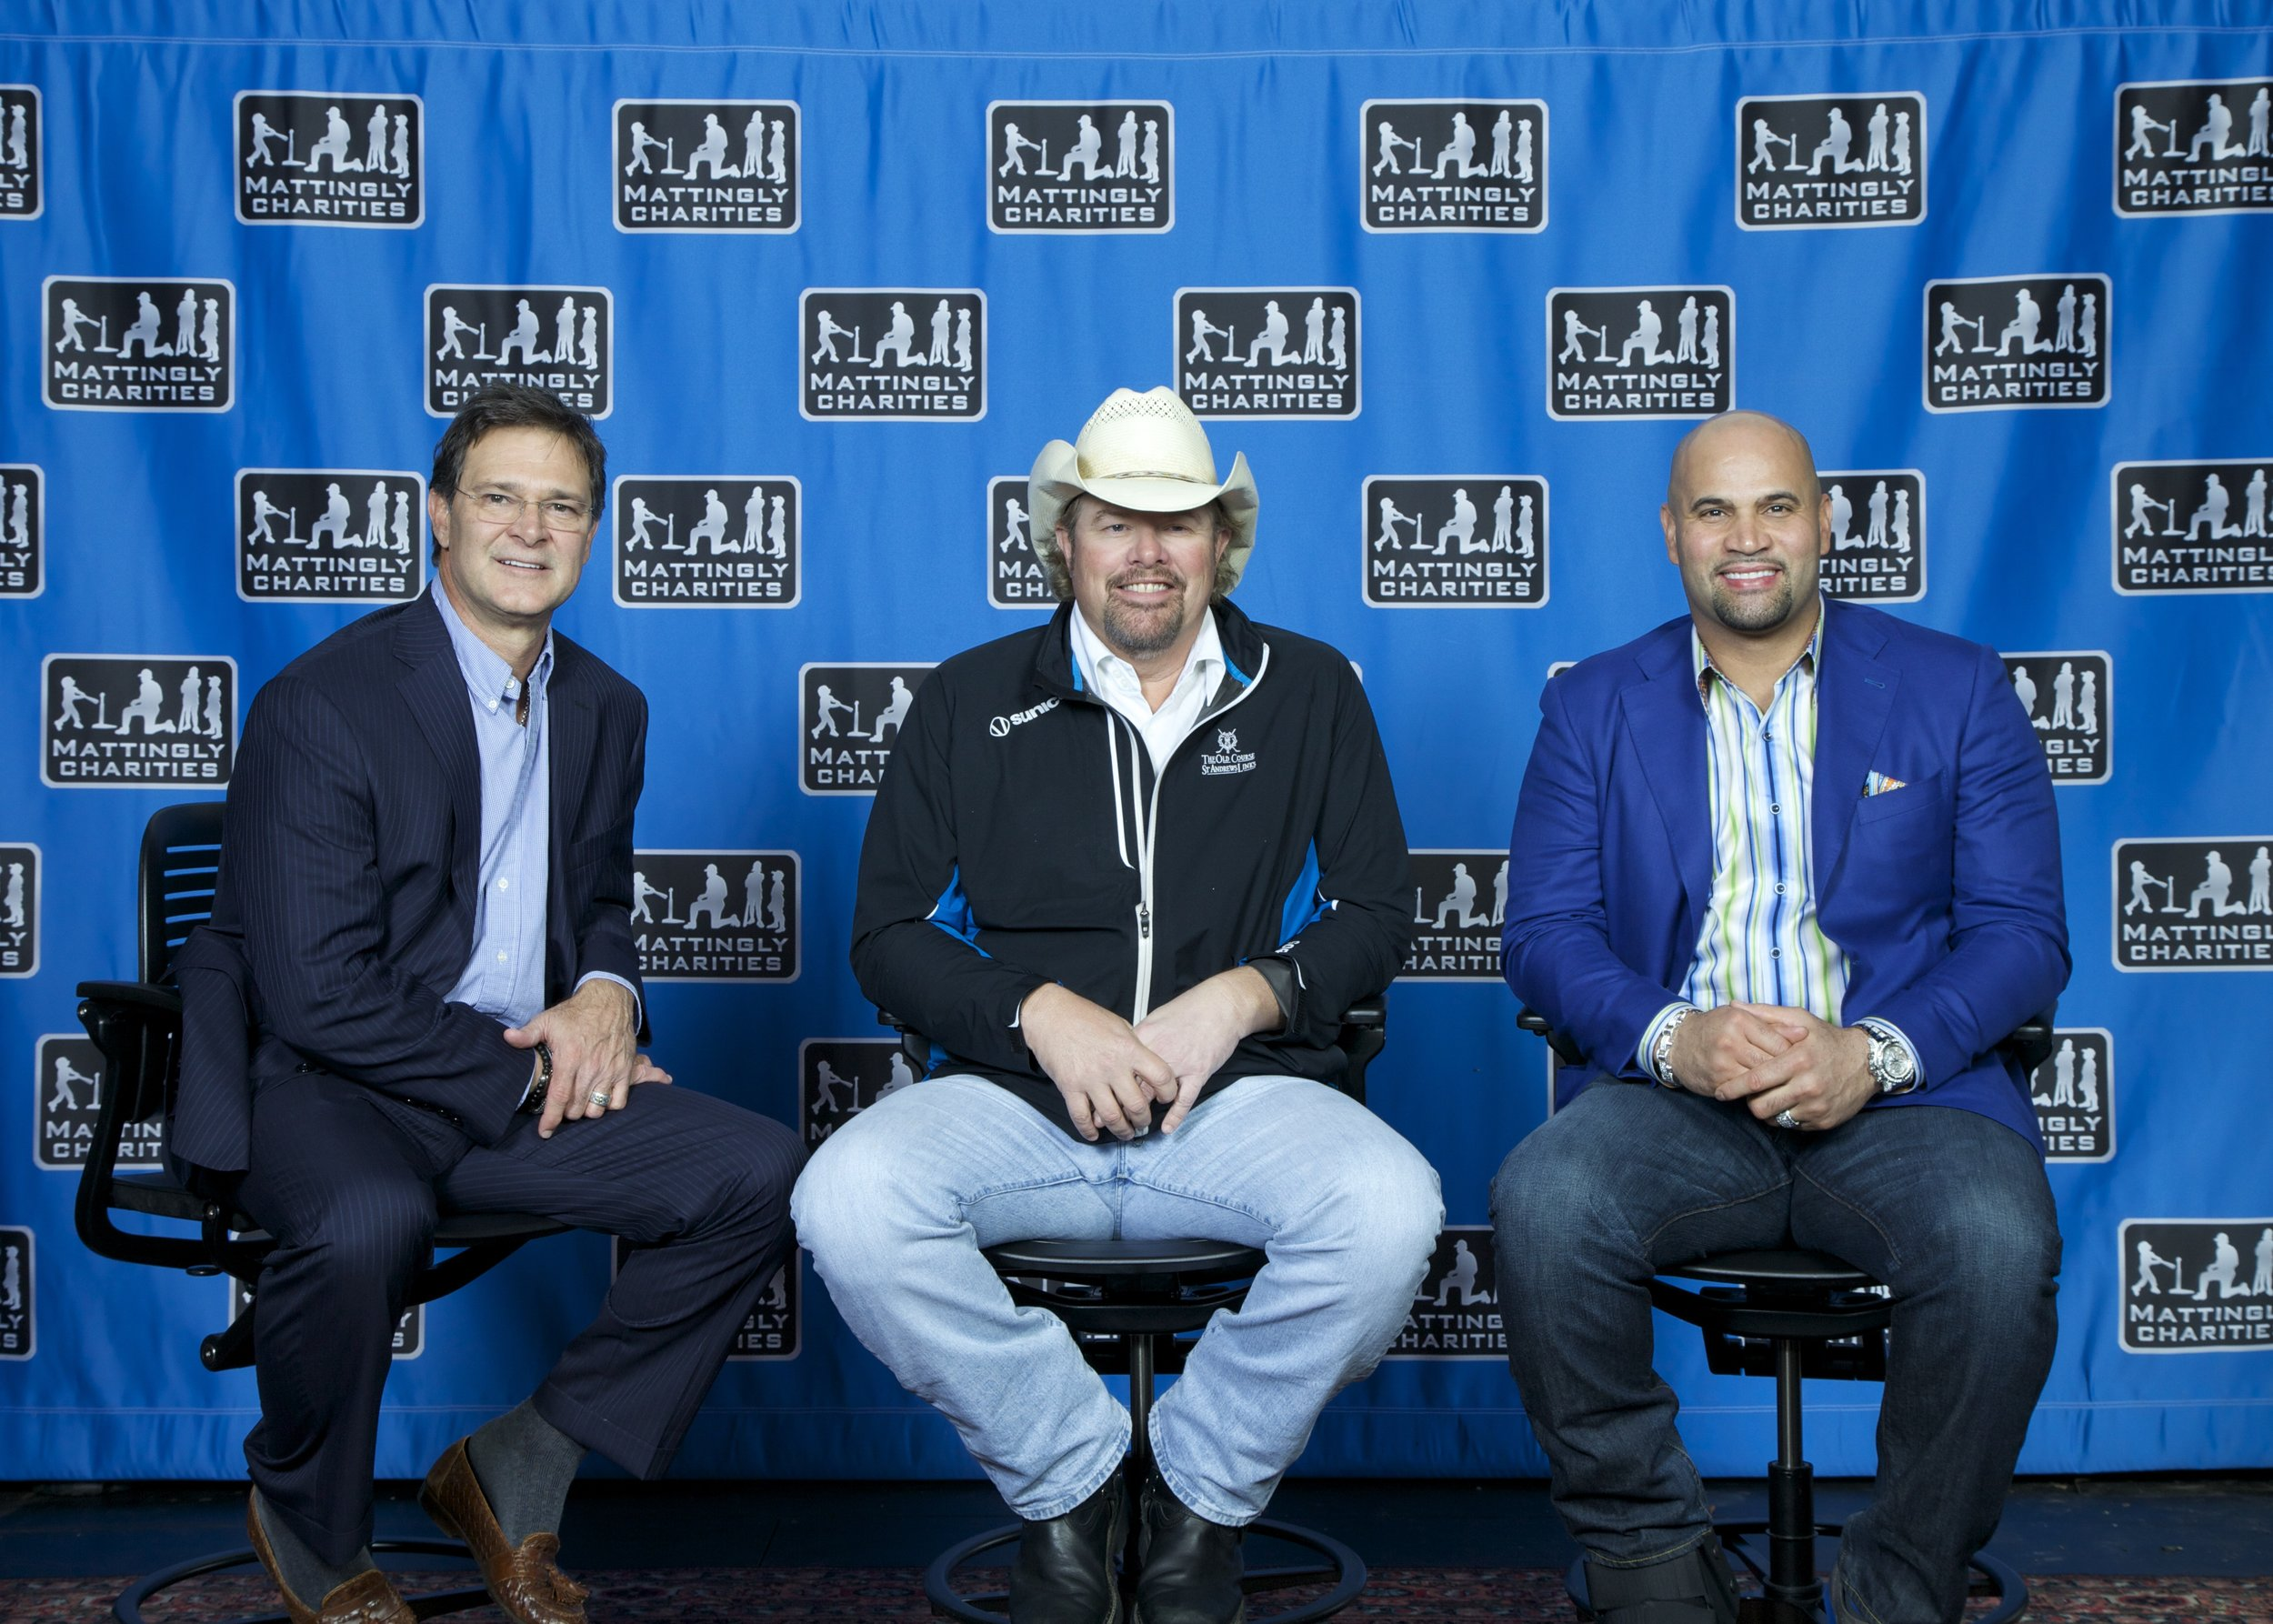 Don Mattingly, Toby Keith, and Albert Pujols